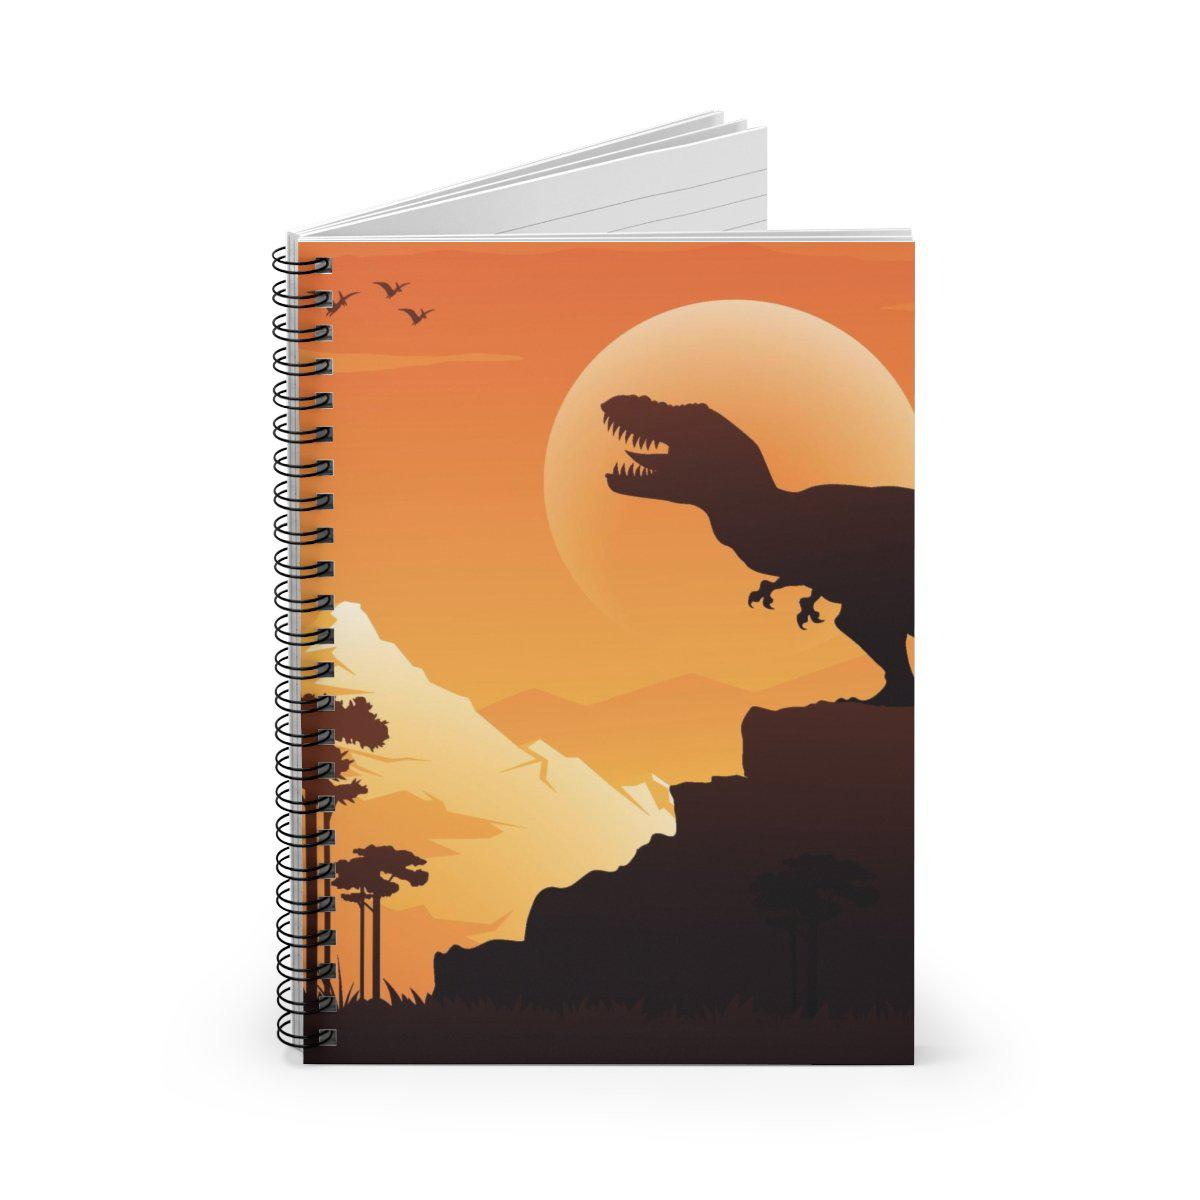 Dinosaur Notebook